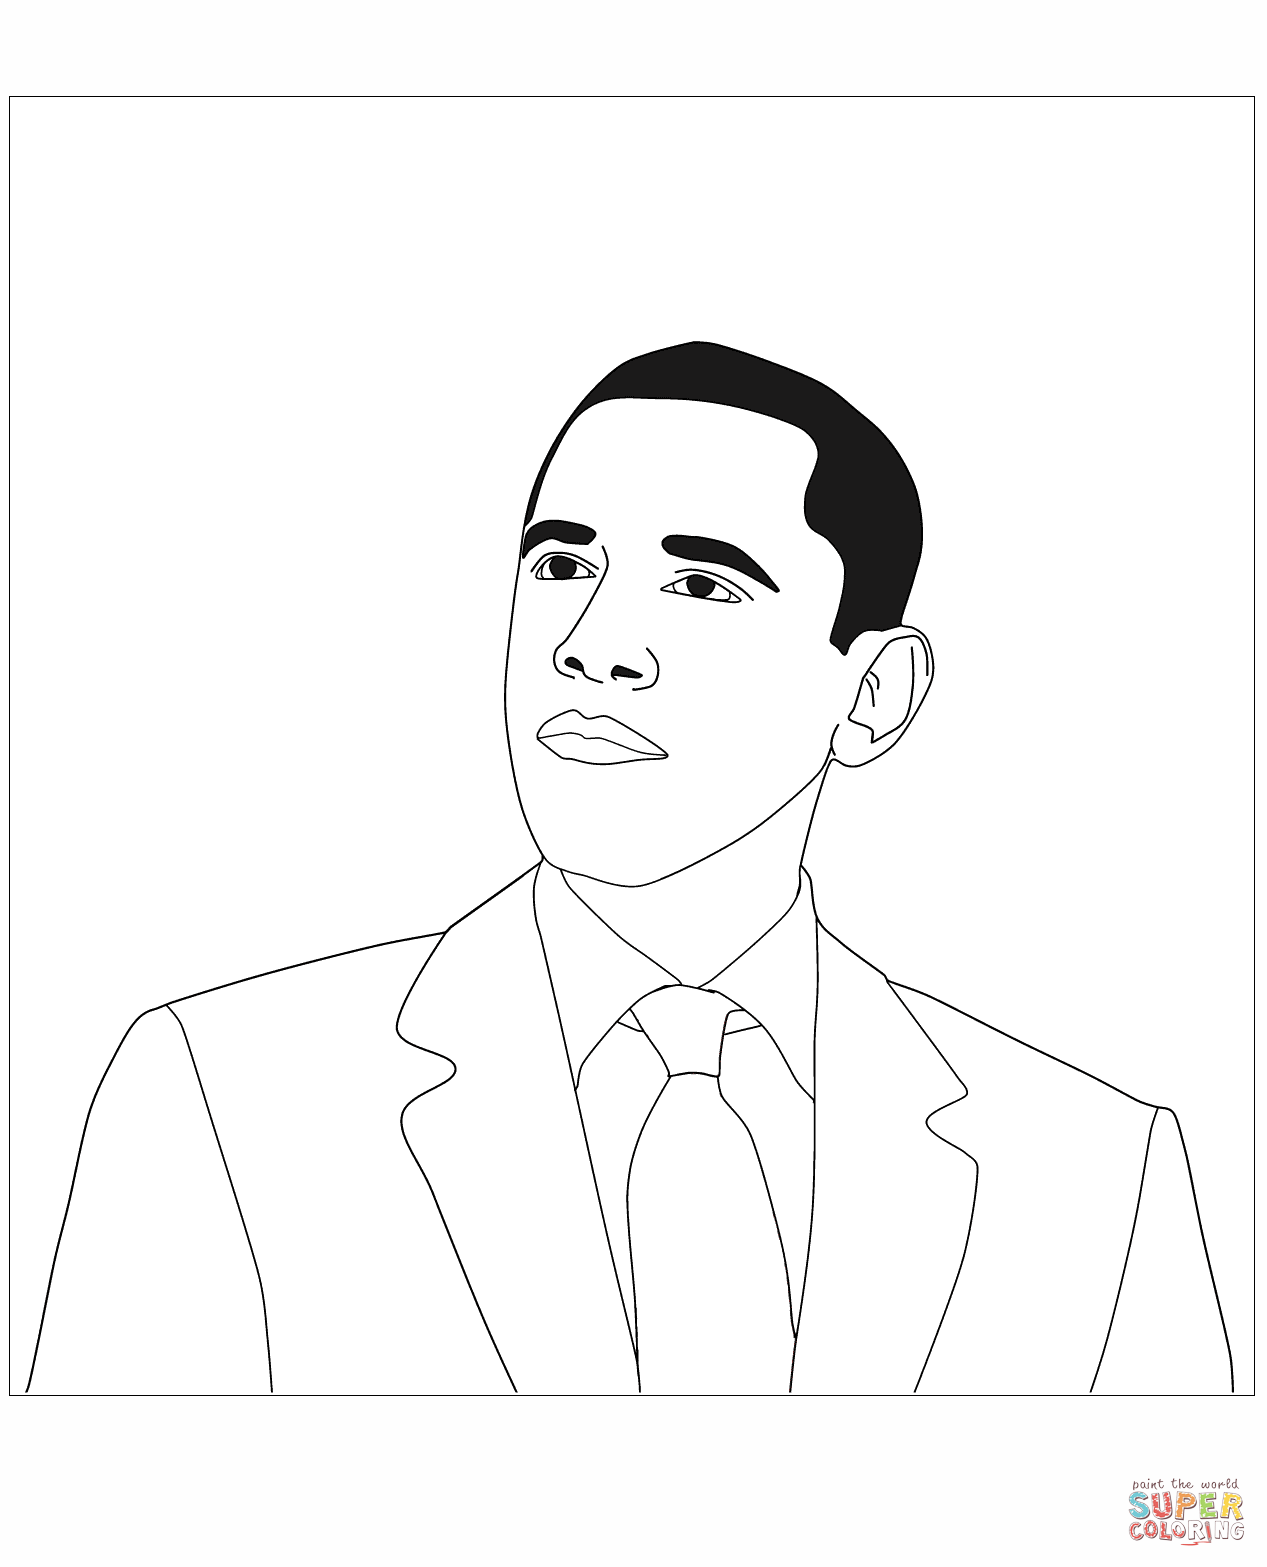 Donald Trump Coloring Page Free Printable Coloring Pages